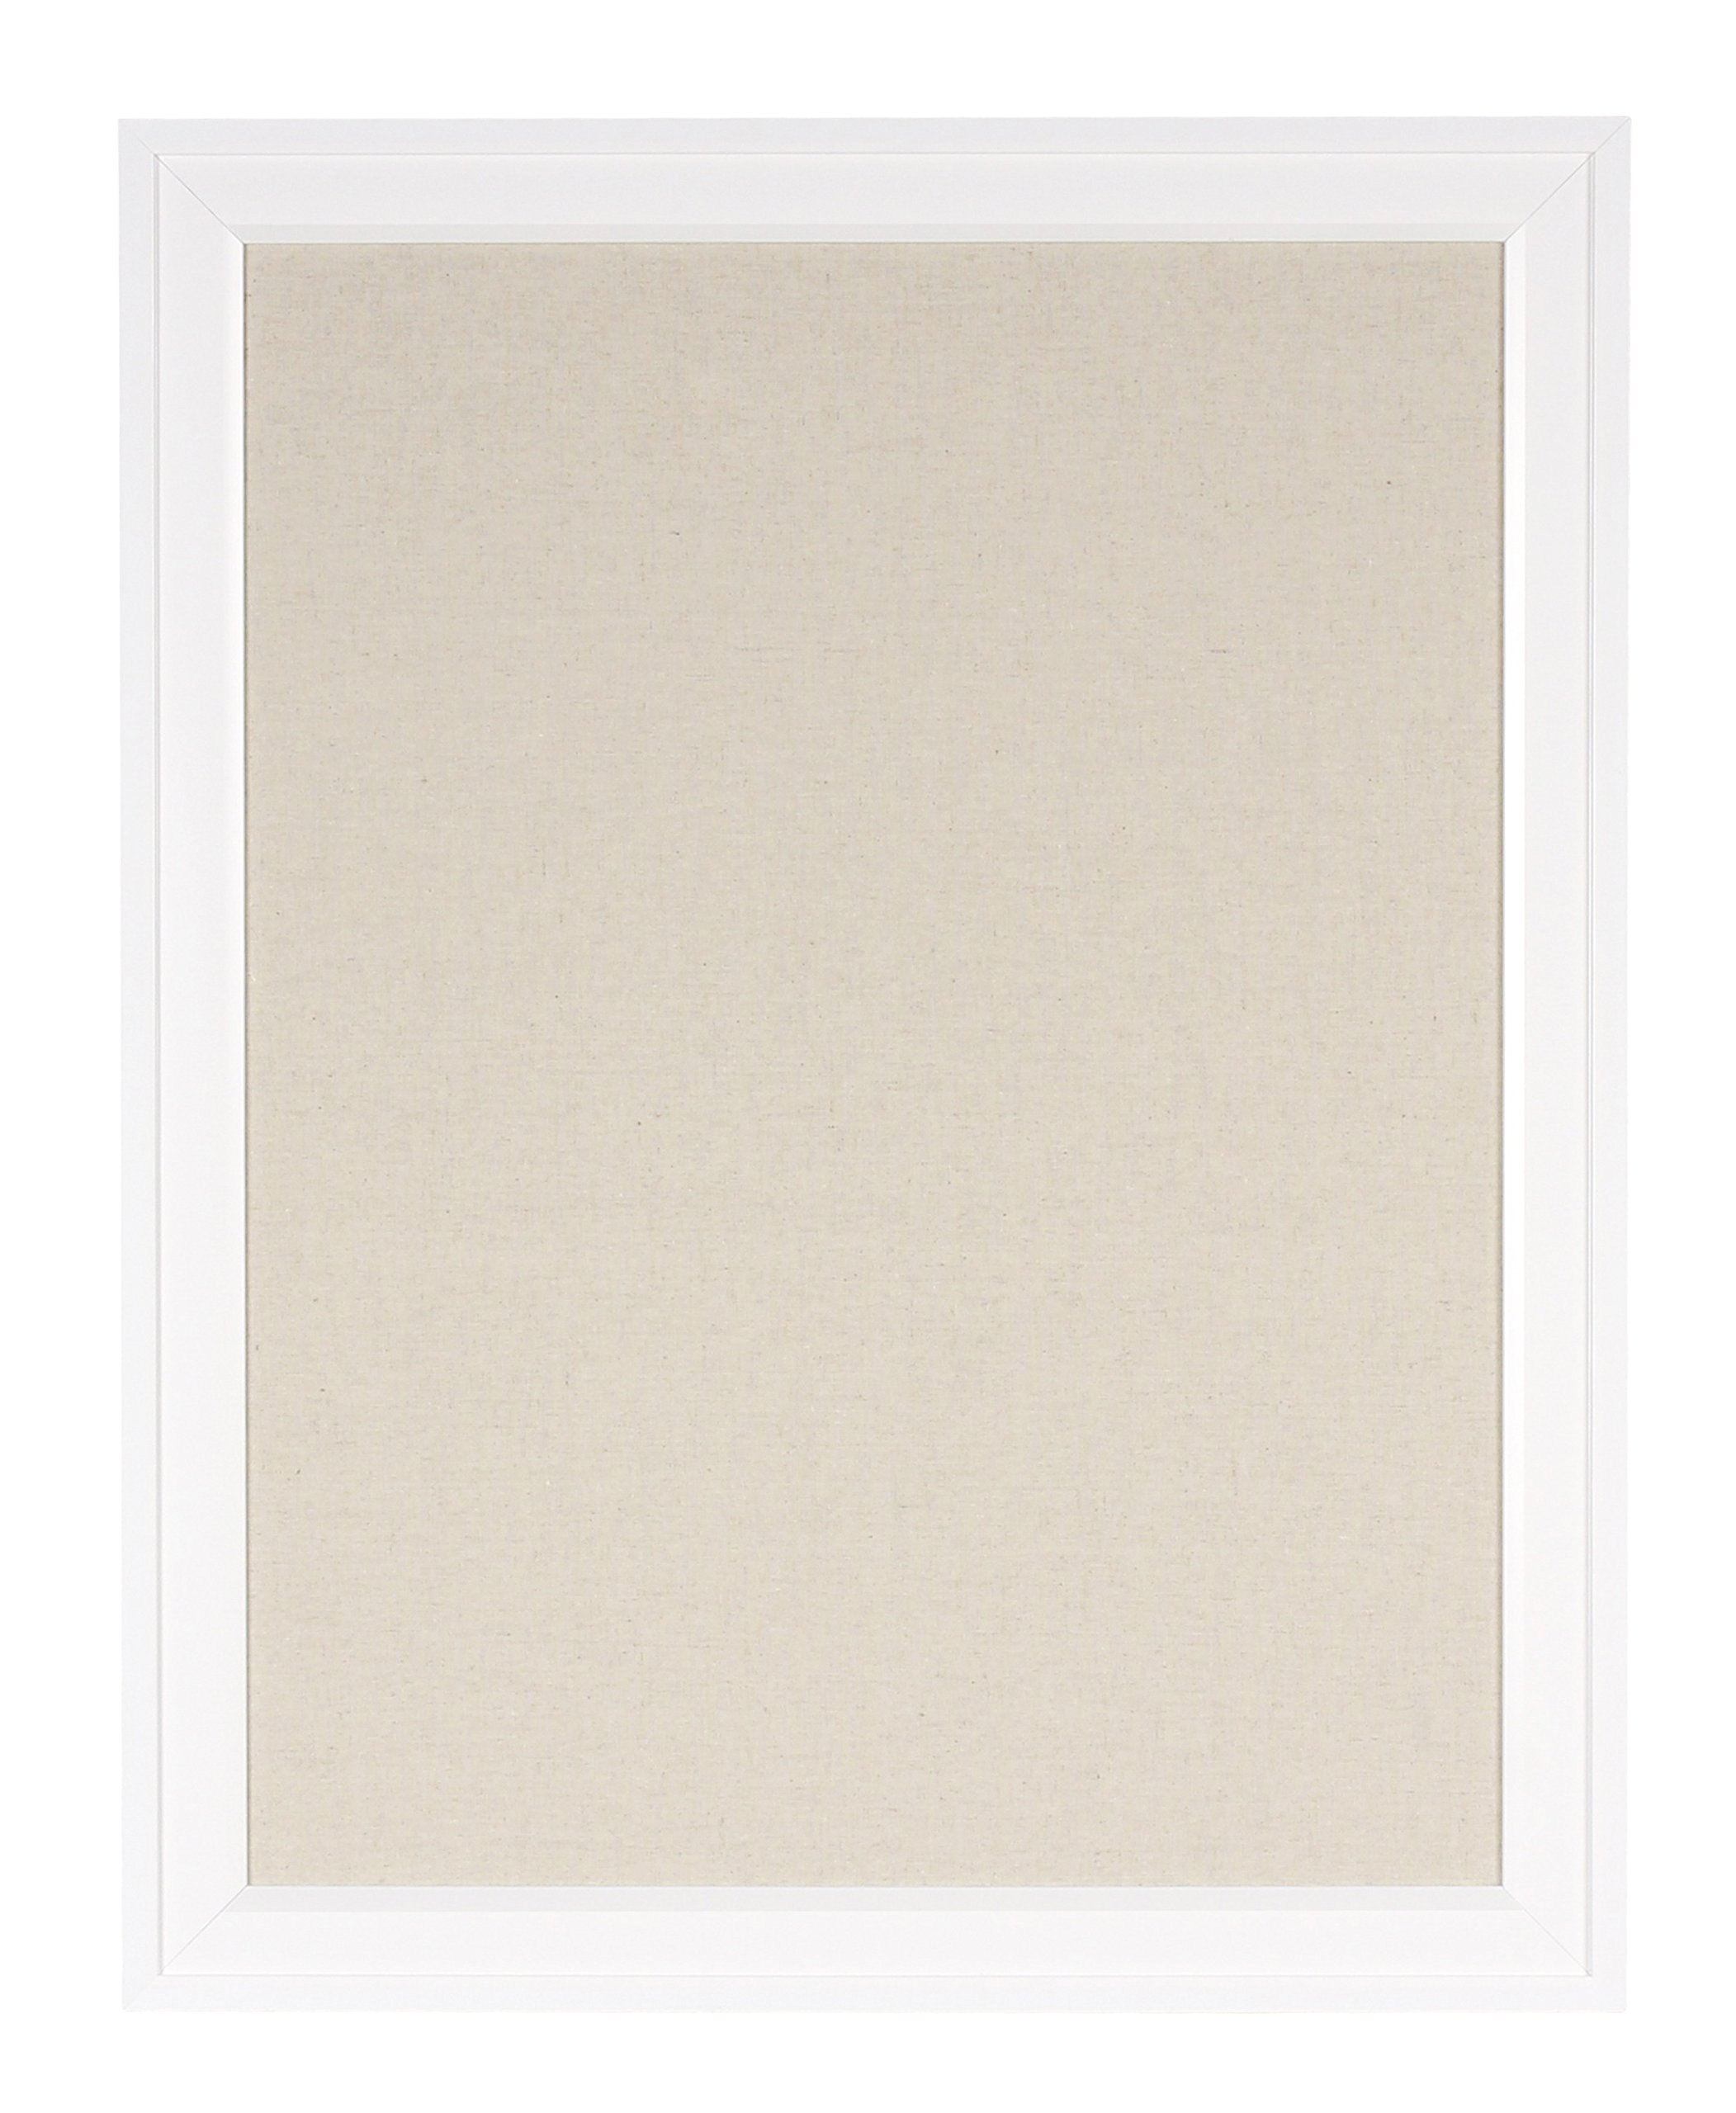 DesignOvation Bosc Pinboard, 23.5x29.5, White